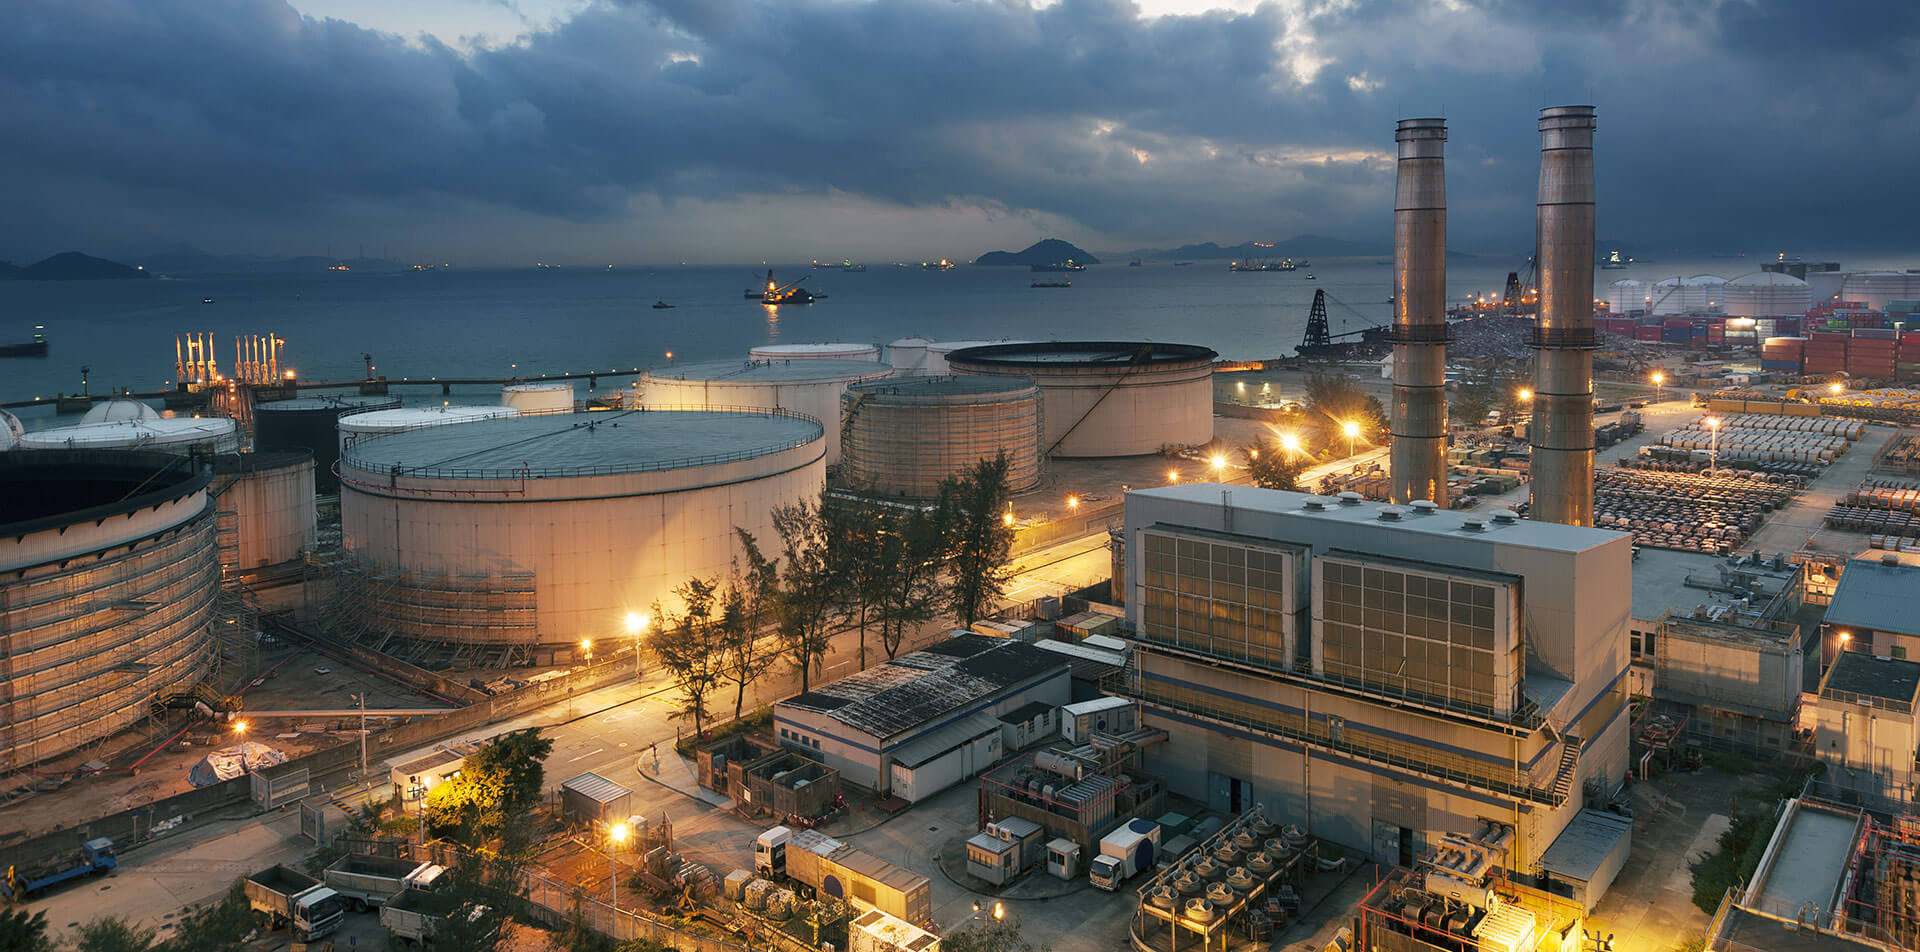 plant refinery accidents